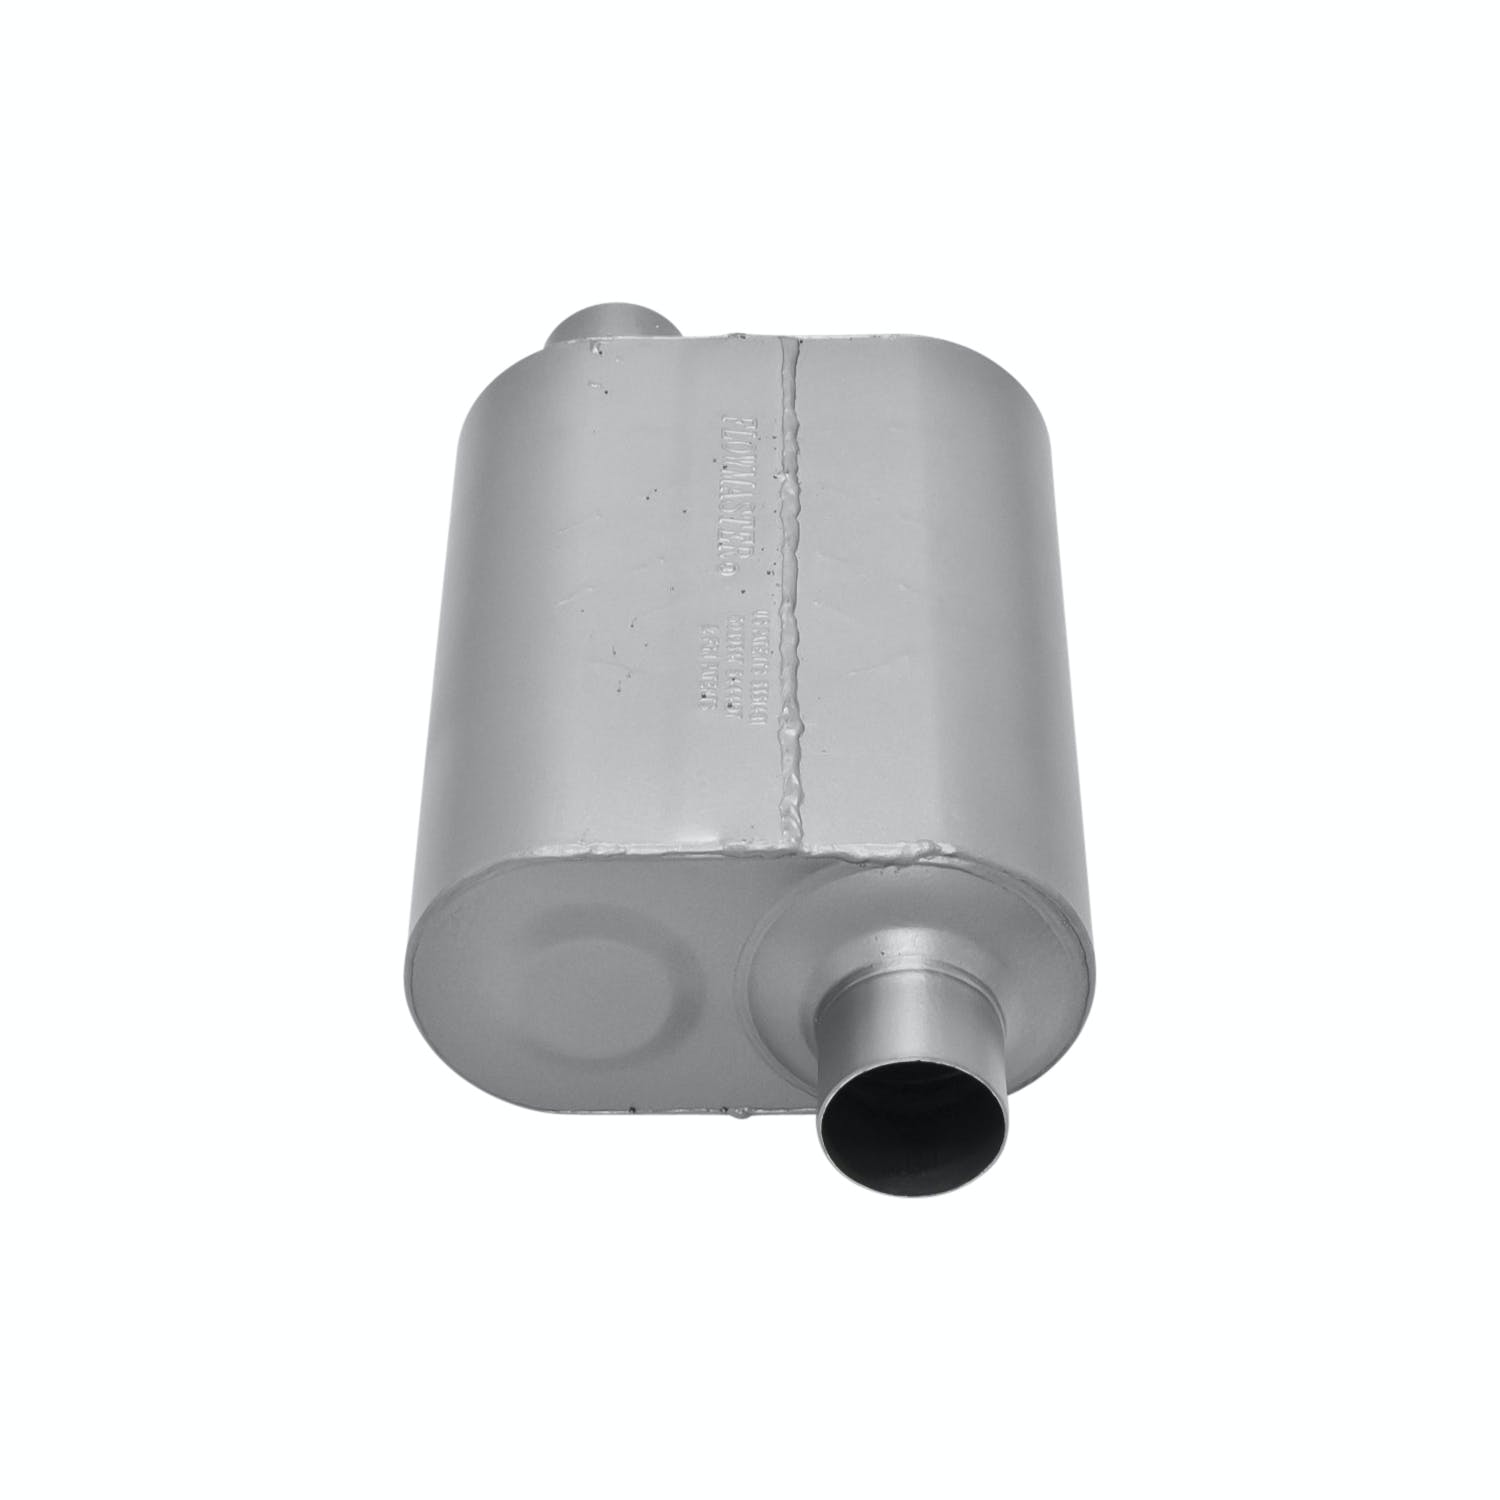 3.00 Offset OUT Moderate Sound Flowmaster 853057 Super 50 Muffler 409S 3.00 Center IN